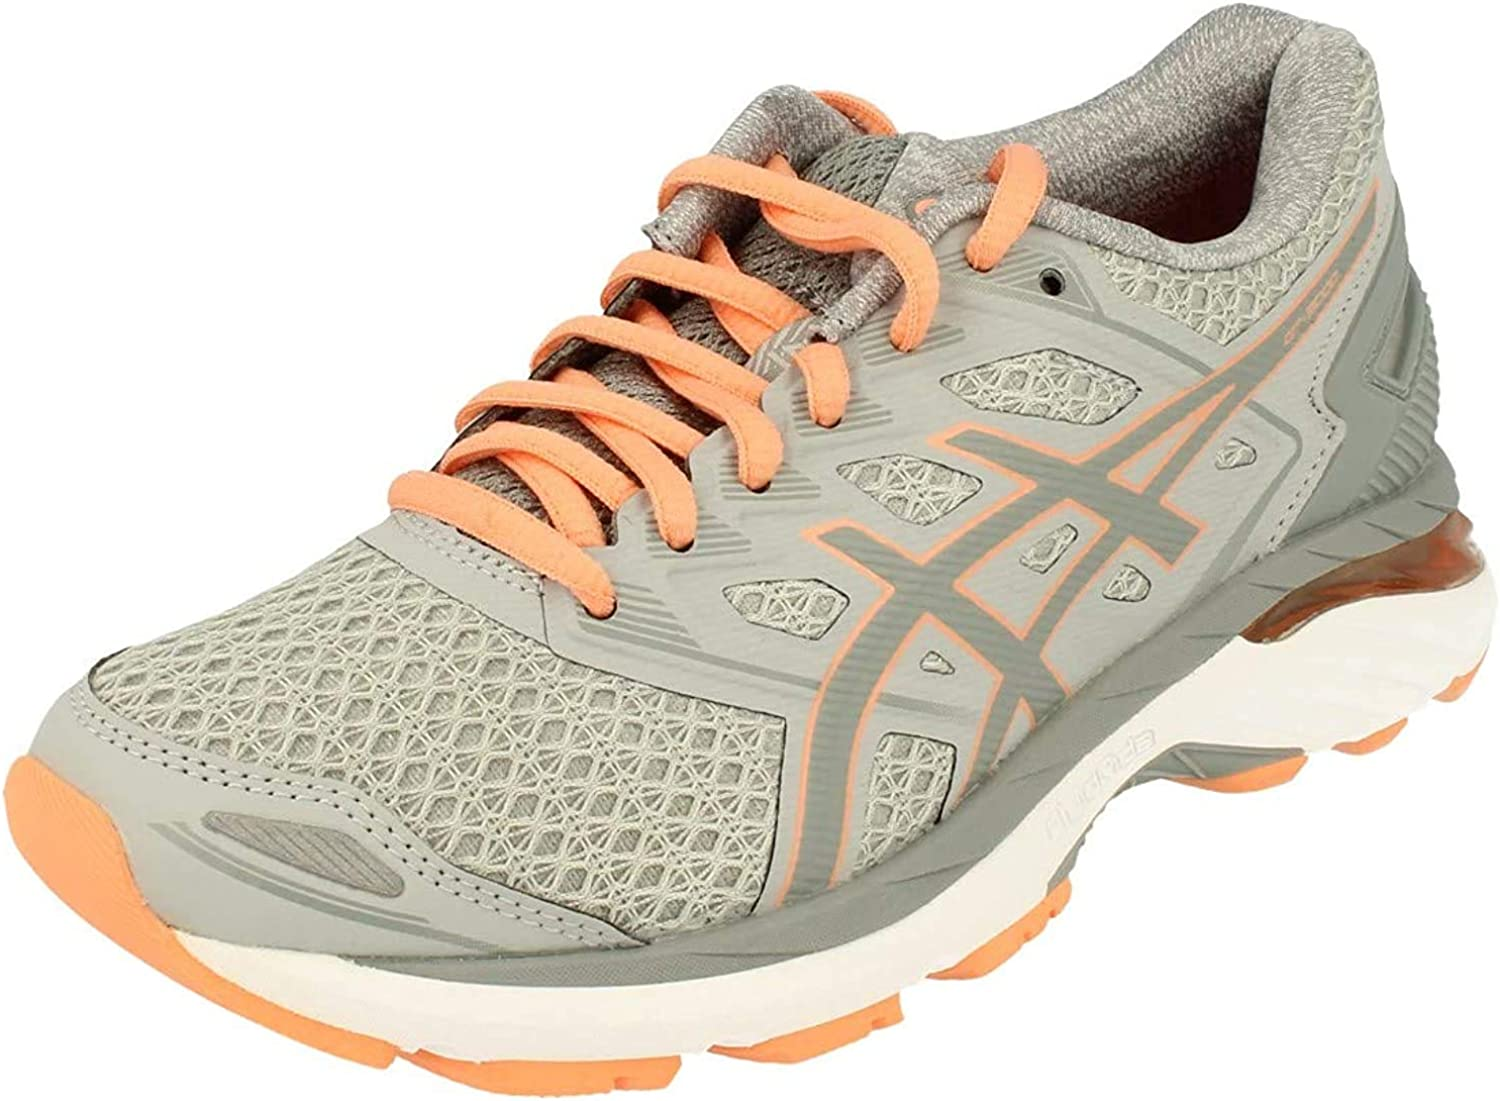 ASICS Gt-3000 5 Womens Running Trainers T755N Sneakers Shoes